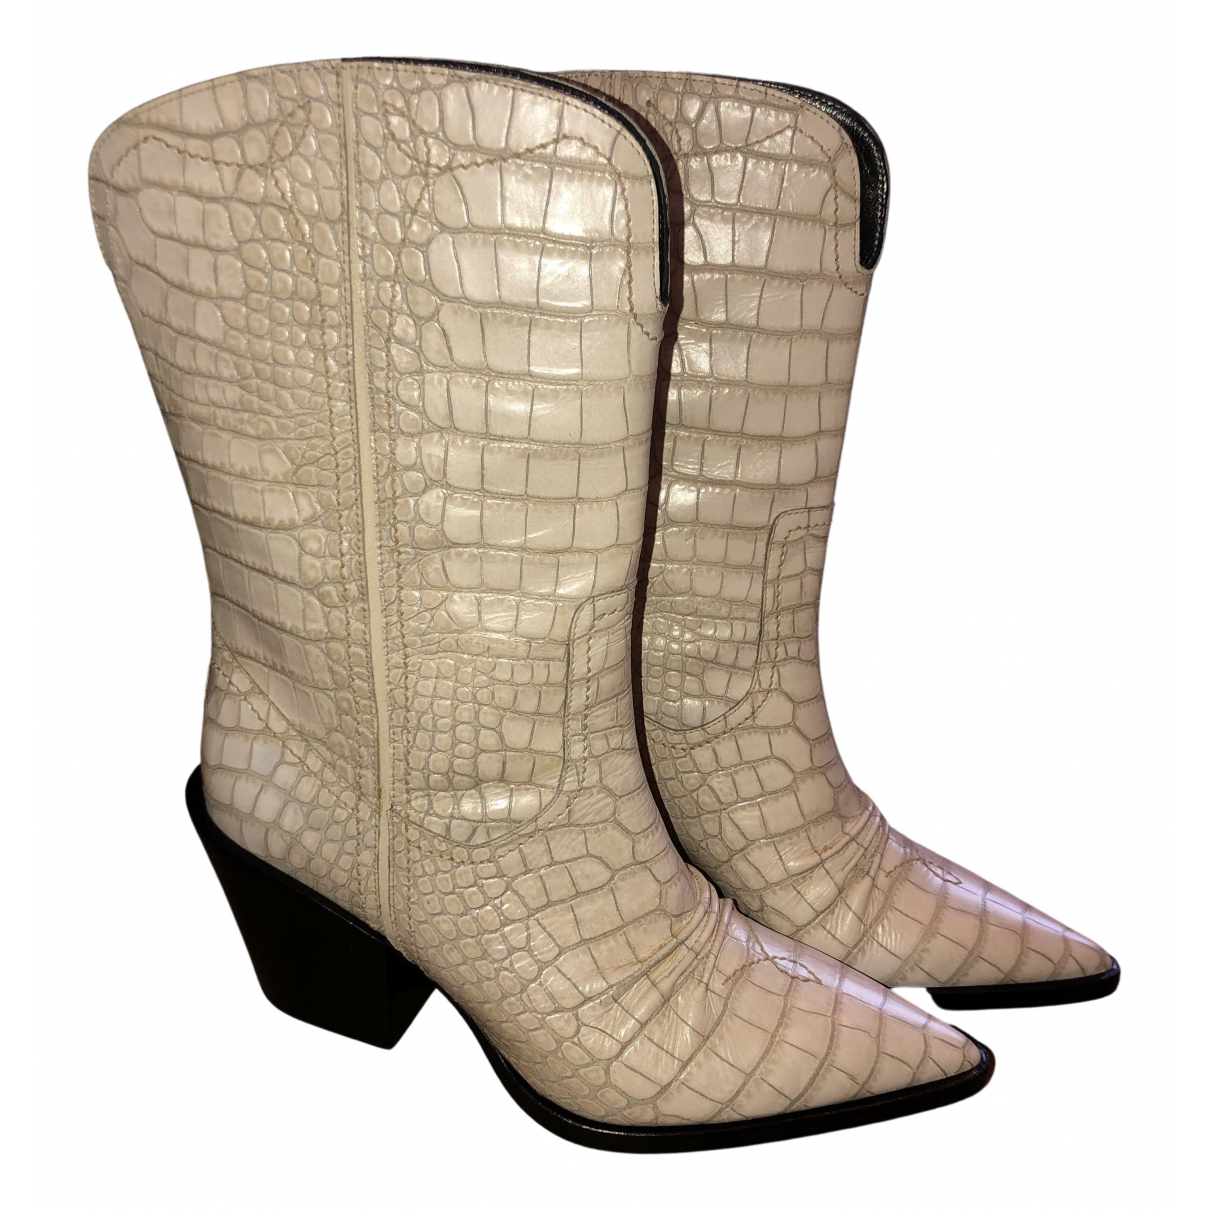 Dorothee Schumacher N White Leather Boots for Women 38 EU